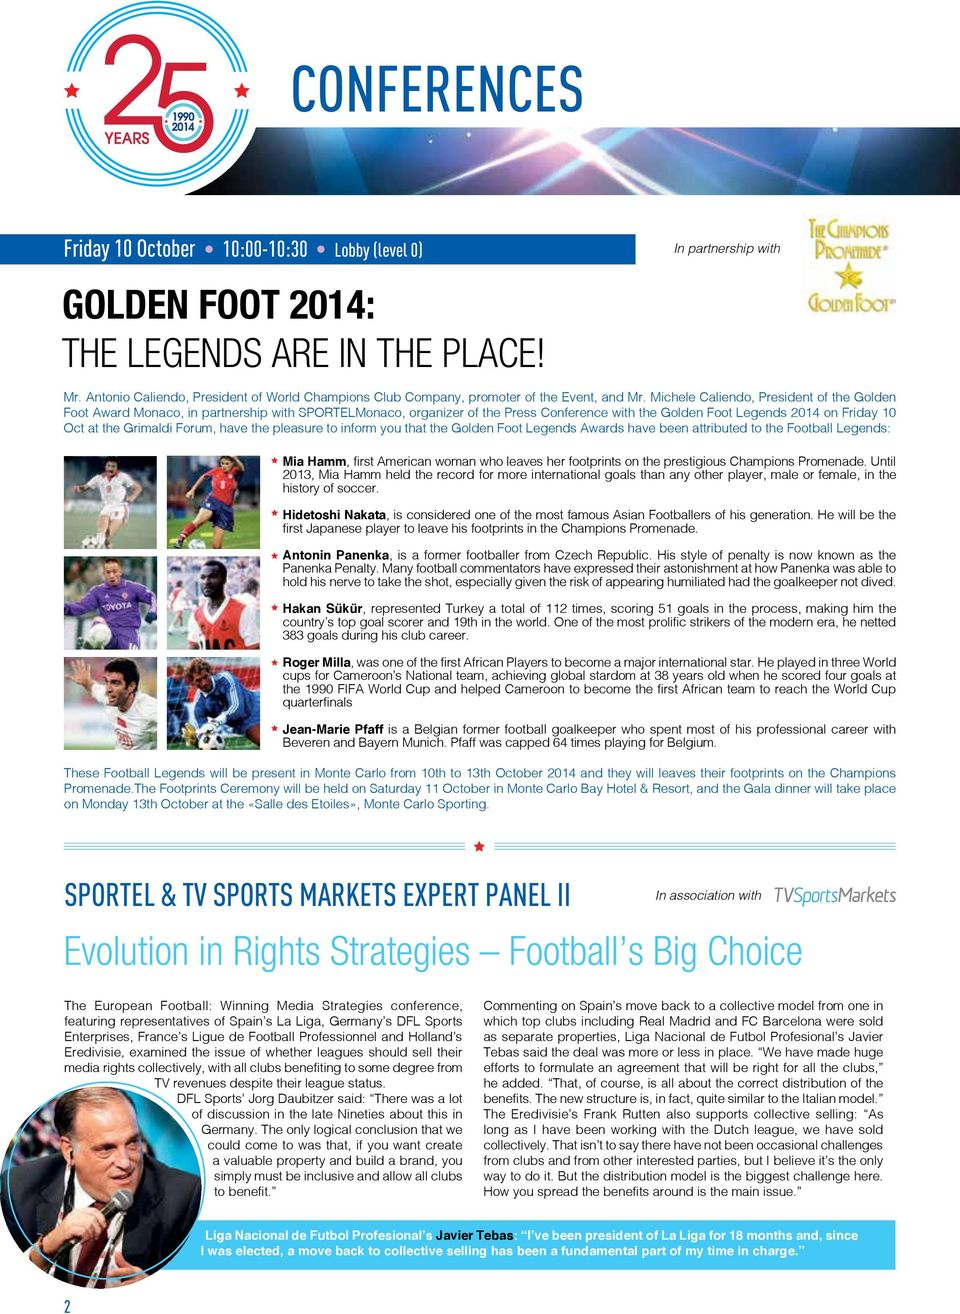 Michele Caliendo, President of the Golden Foot Award Monaco, in partnership with SPORTELMonaco, organizer of the Press Conference with the Golden Foot Legends 2014 on Friday 10 Oct at the Grimaldi